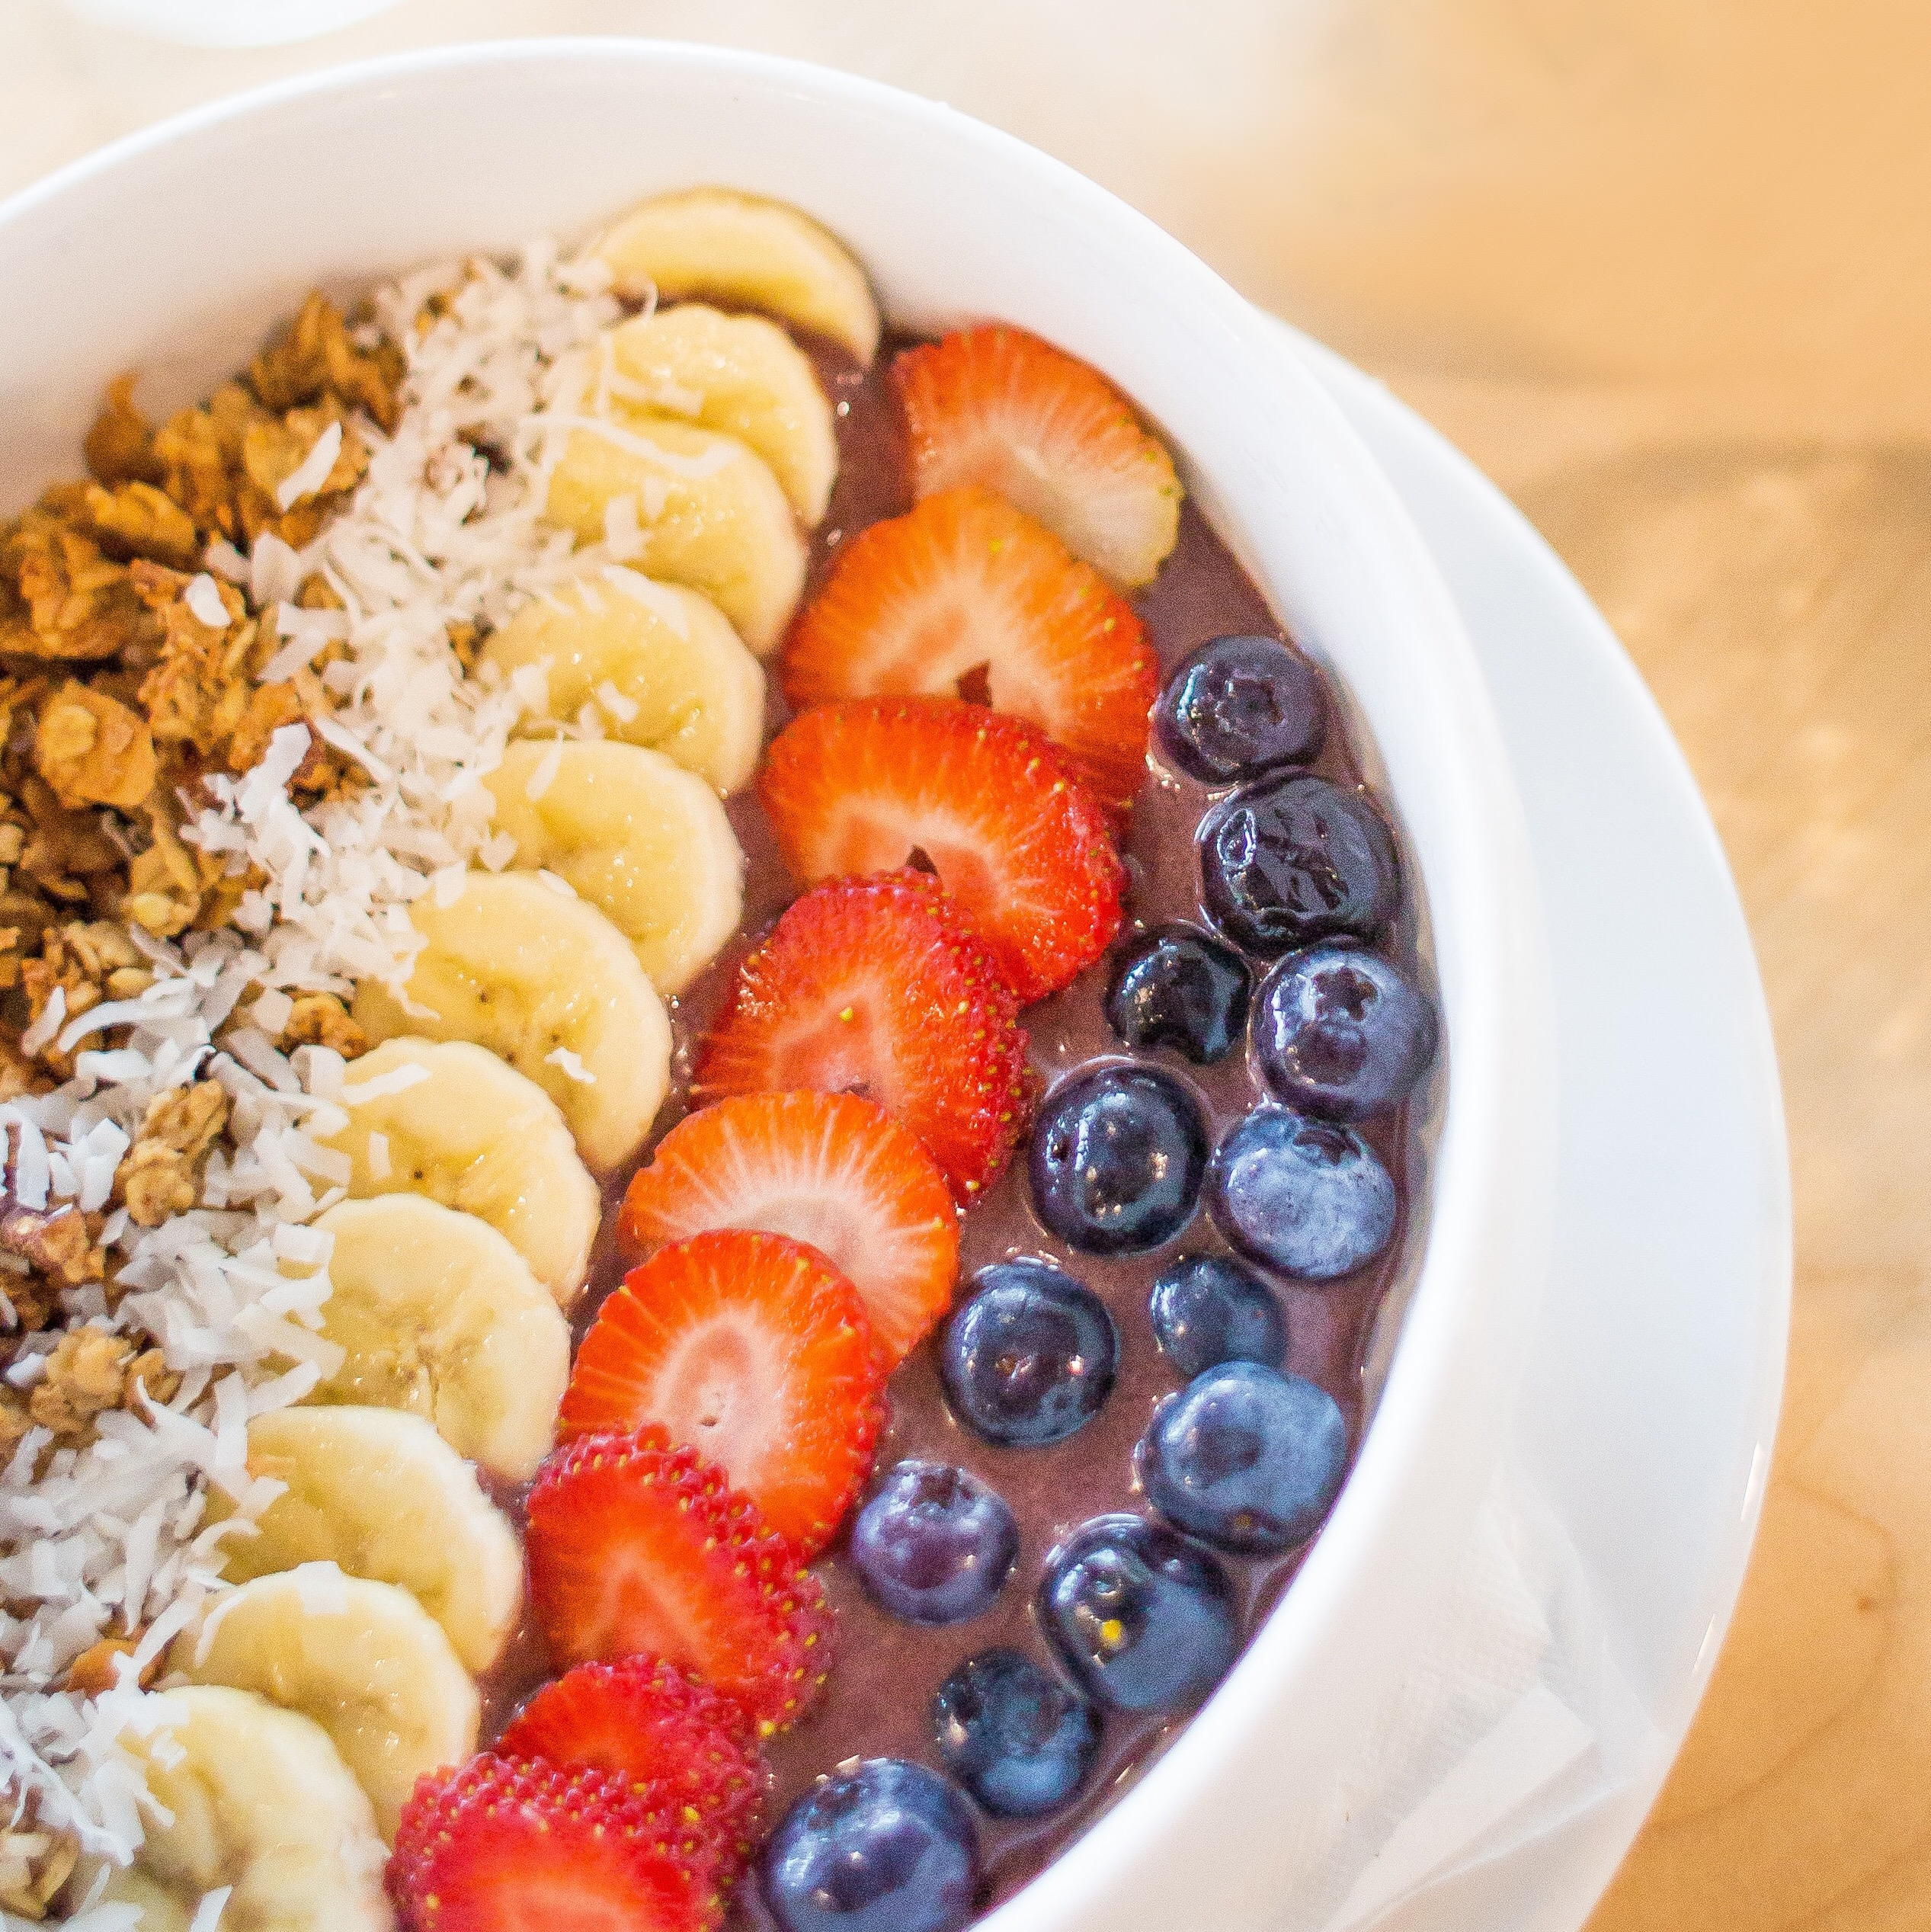 Easy and Delicious Chocolate Açaí Bowl